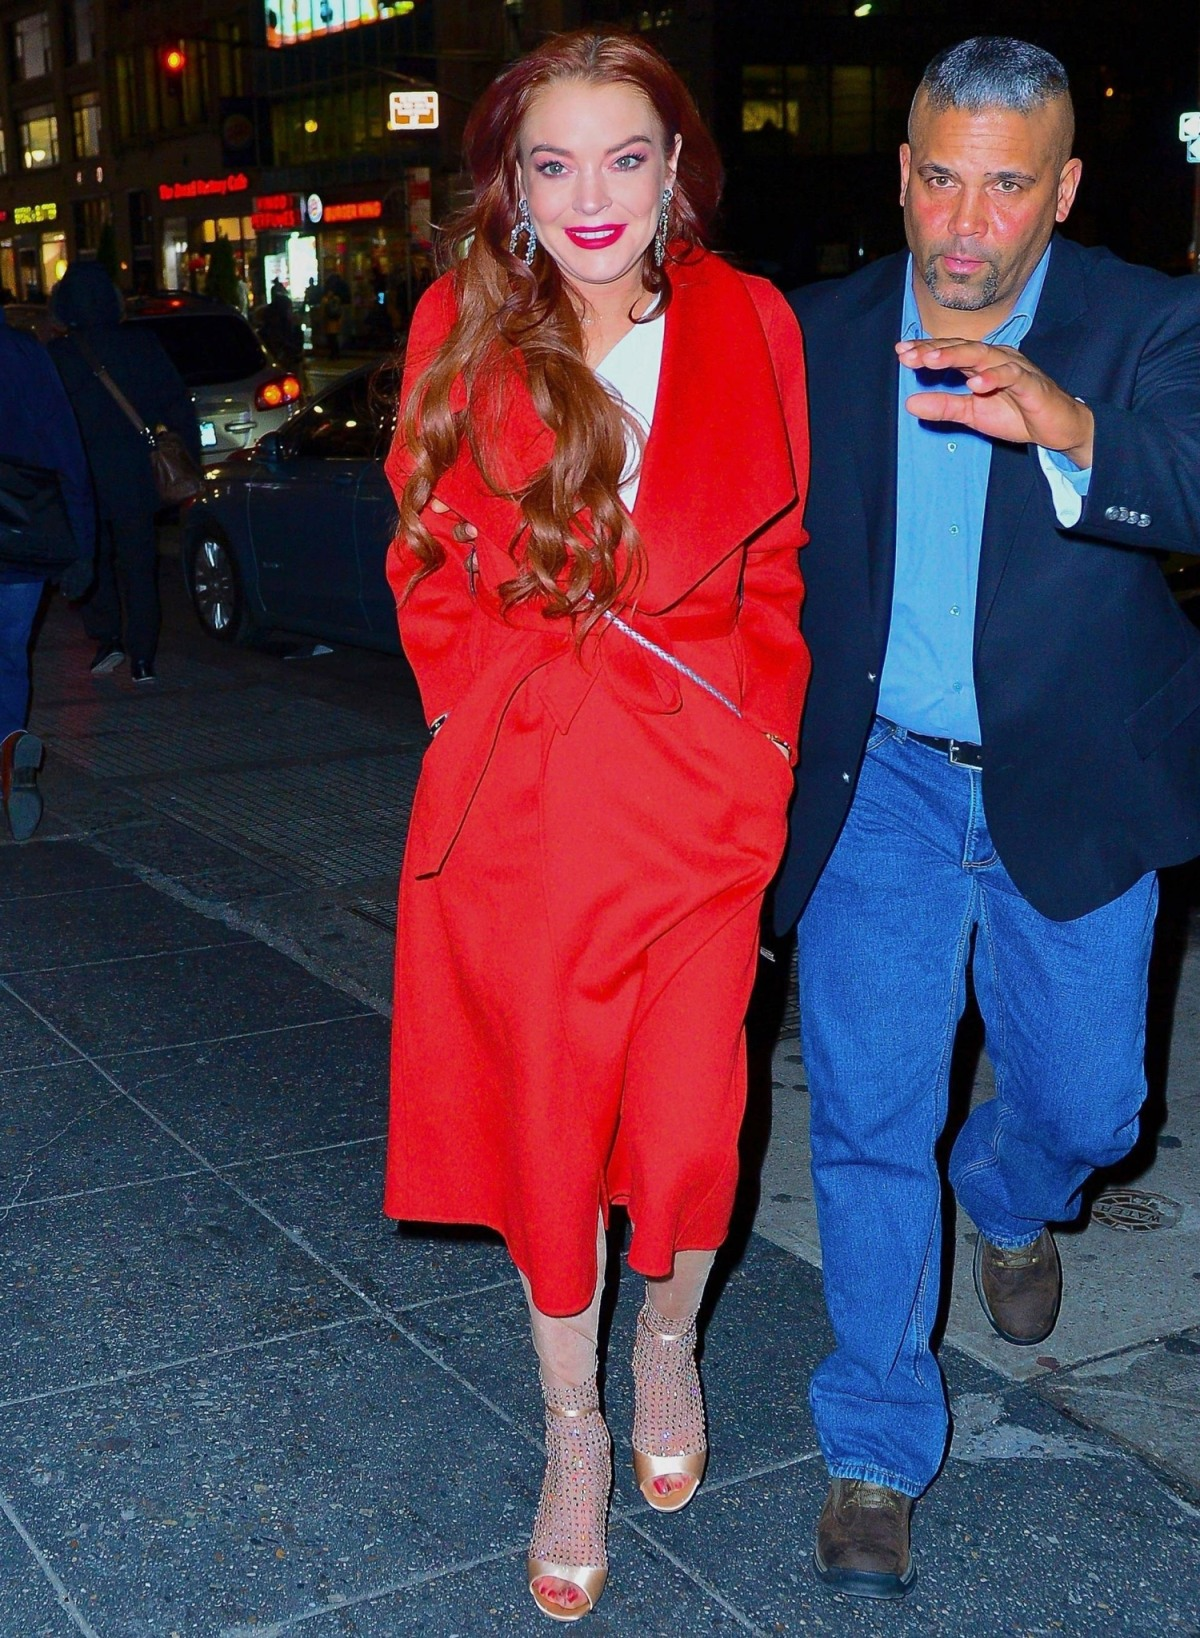 Lindsay Lohan is all smiles as she arrives for the Magic Hour rooftop party.